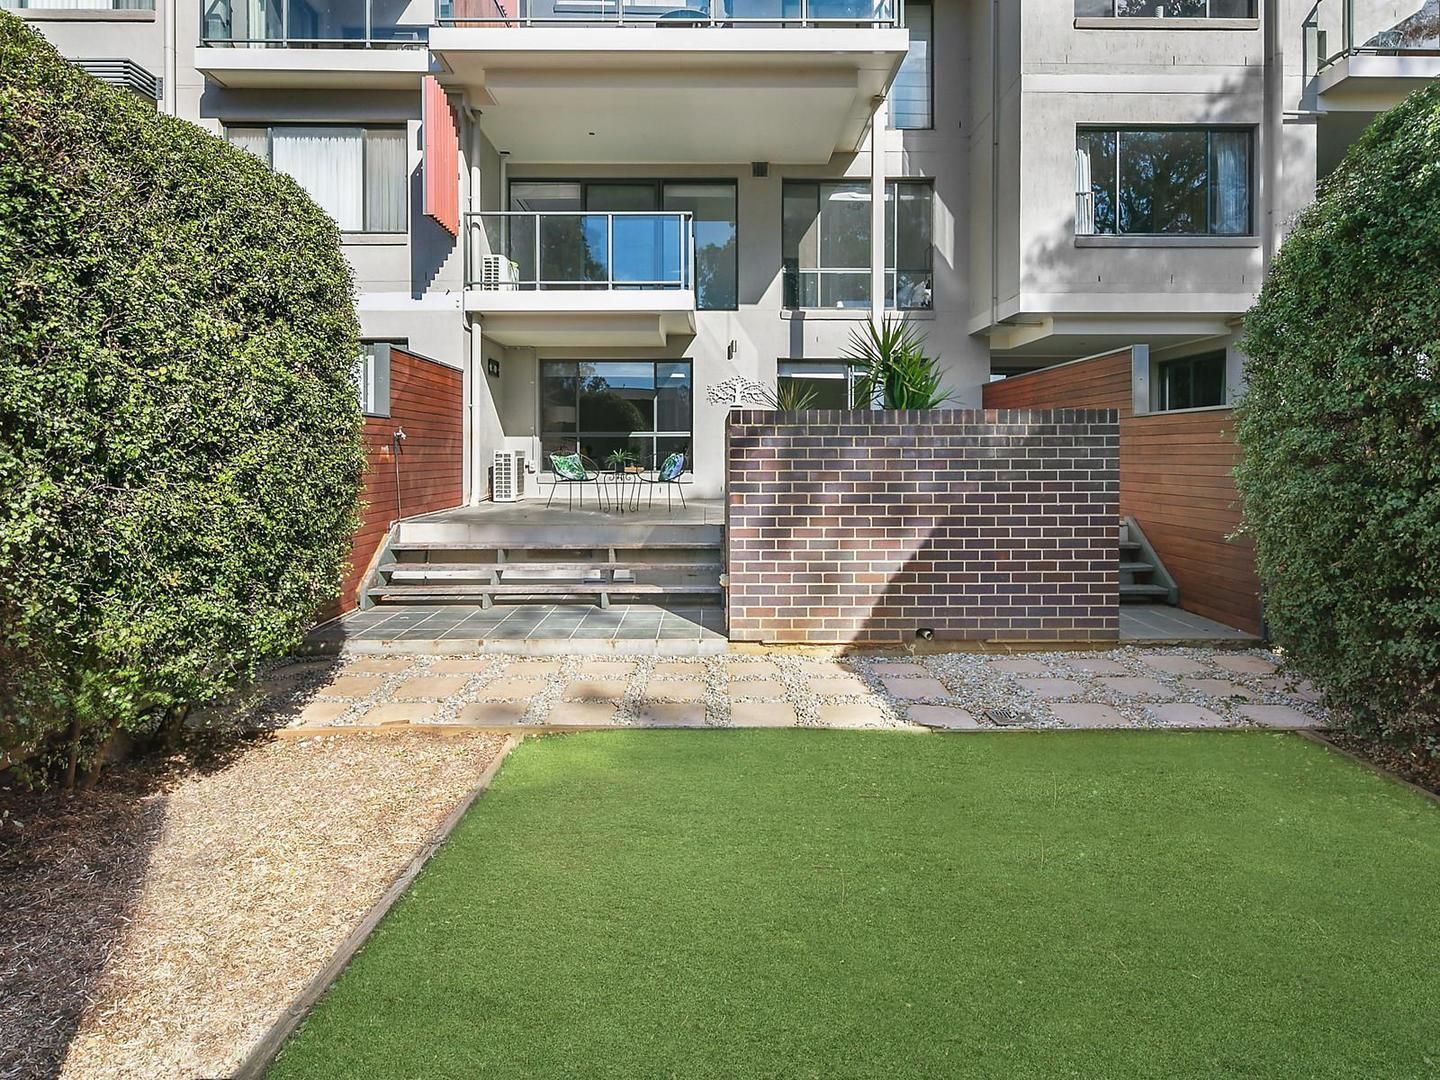 152 395 Antill Street Watson Act 2602 Apartment For